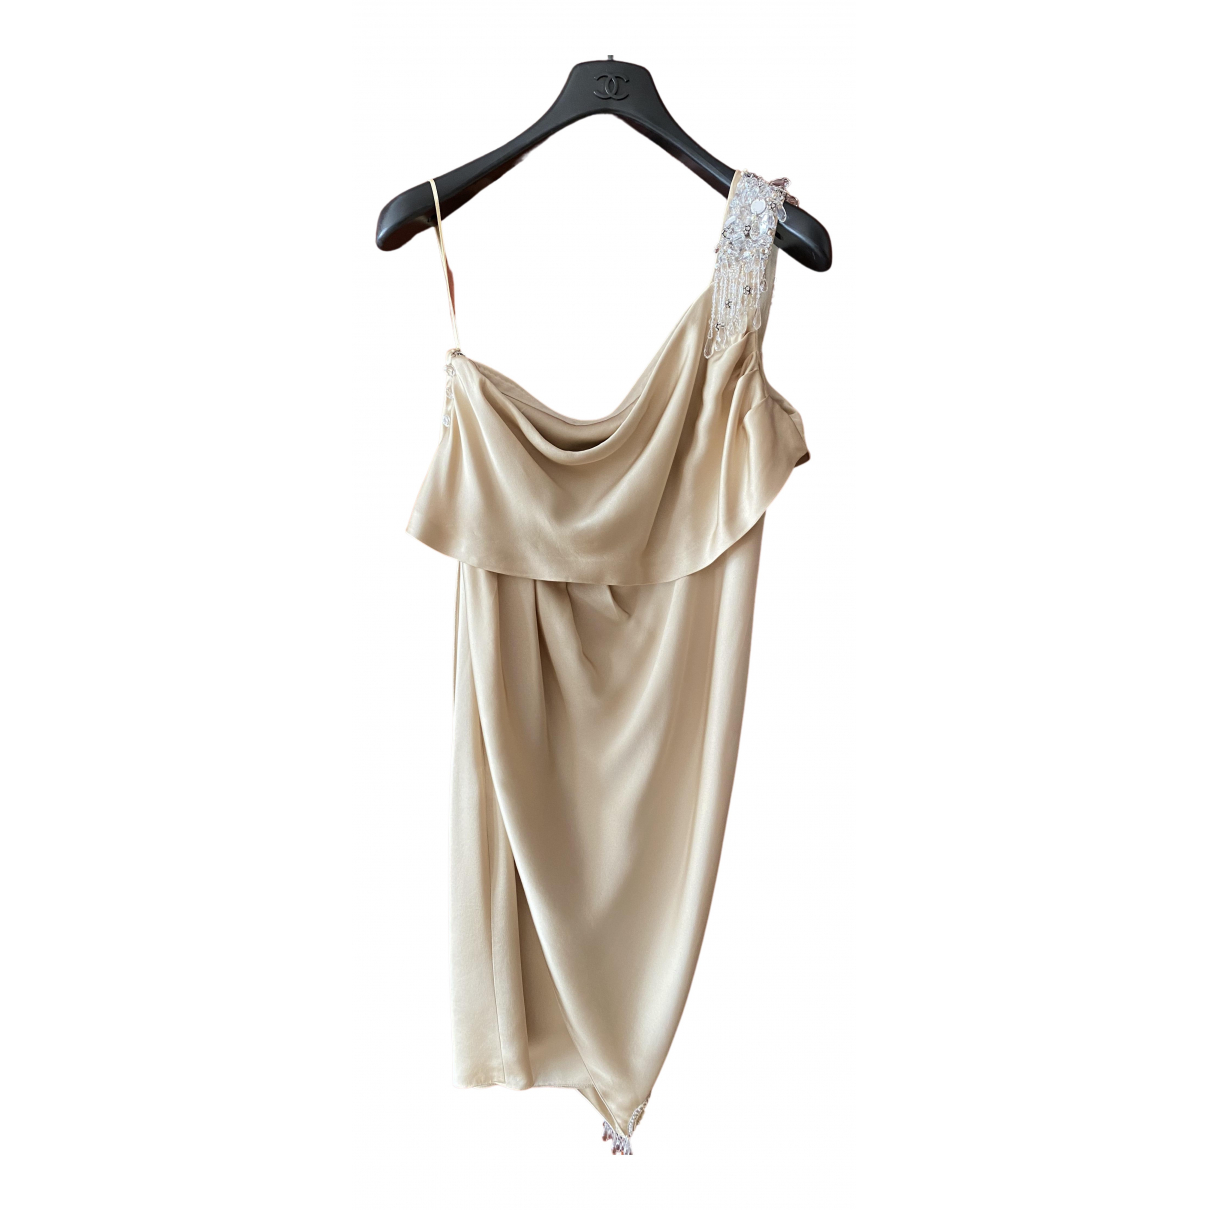 Chanel \N Beige Silk dress for Women 38 FR